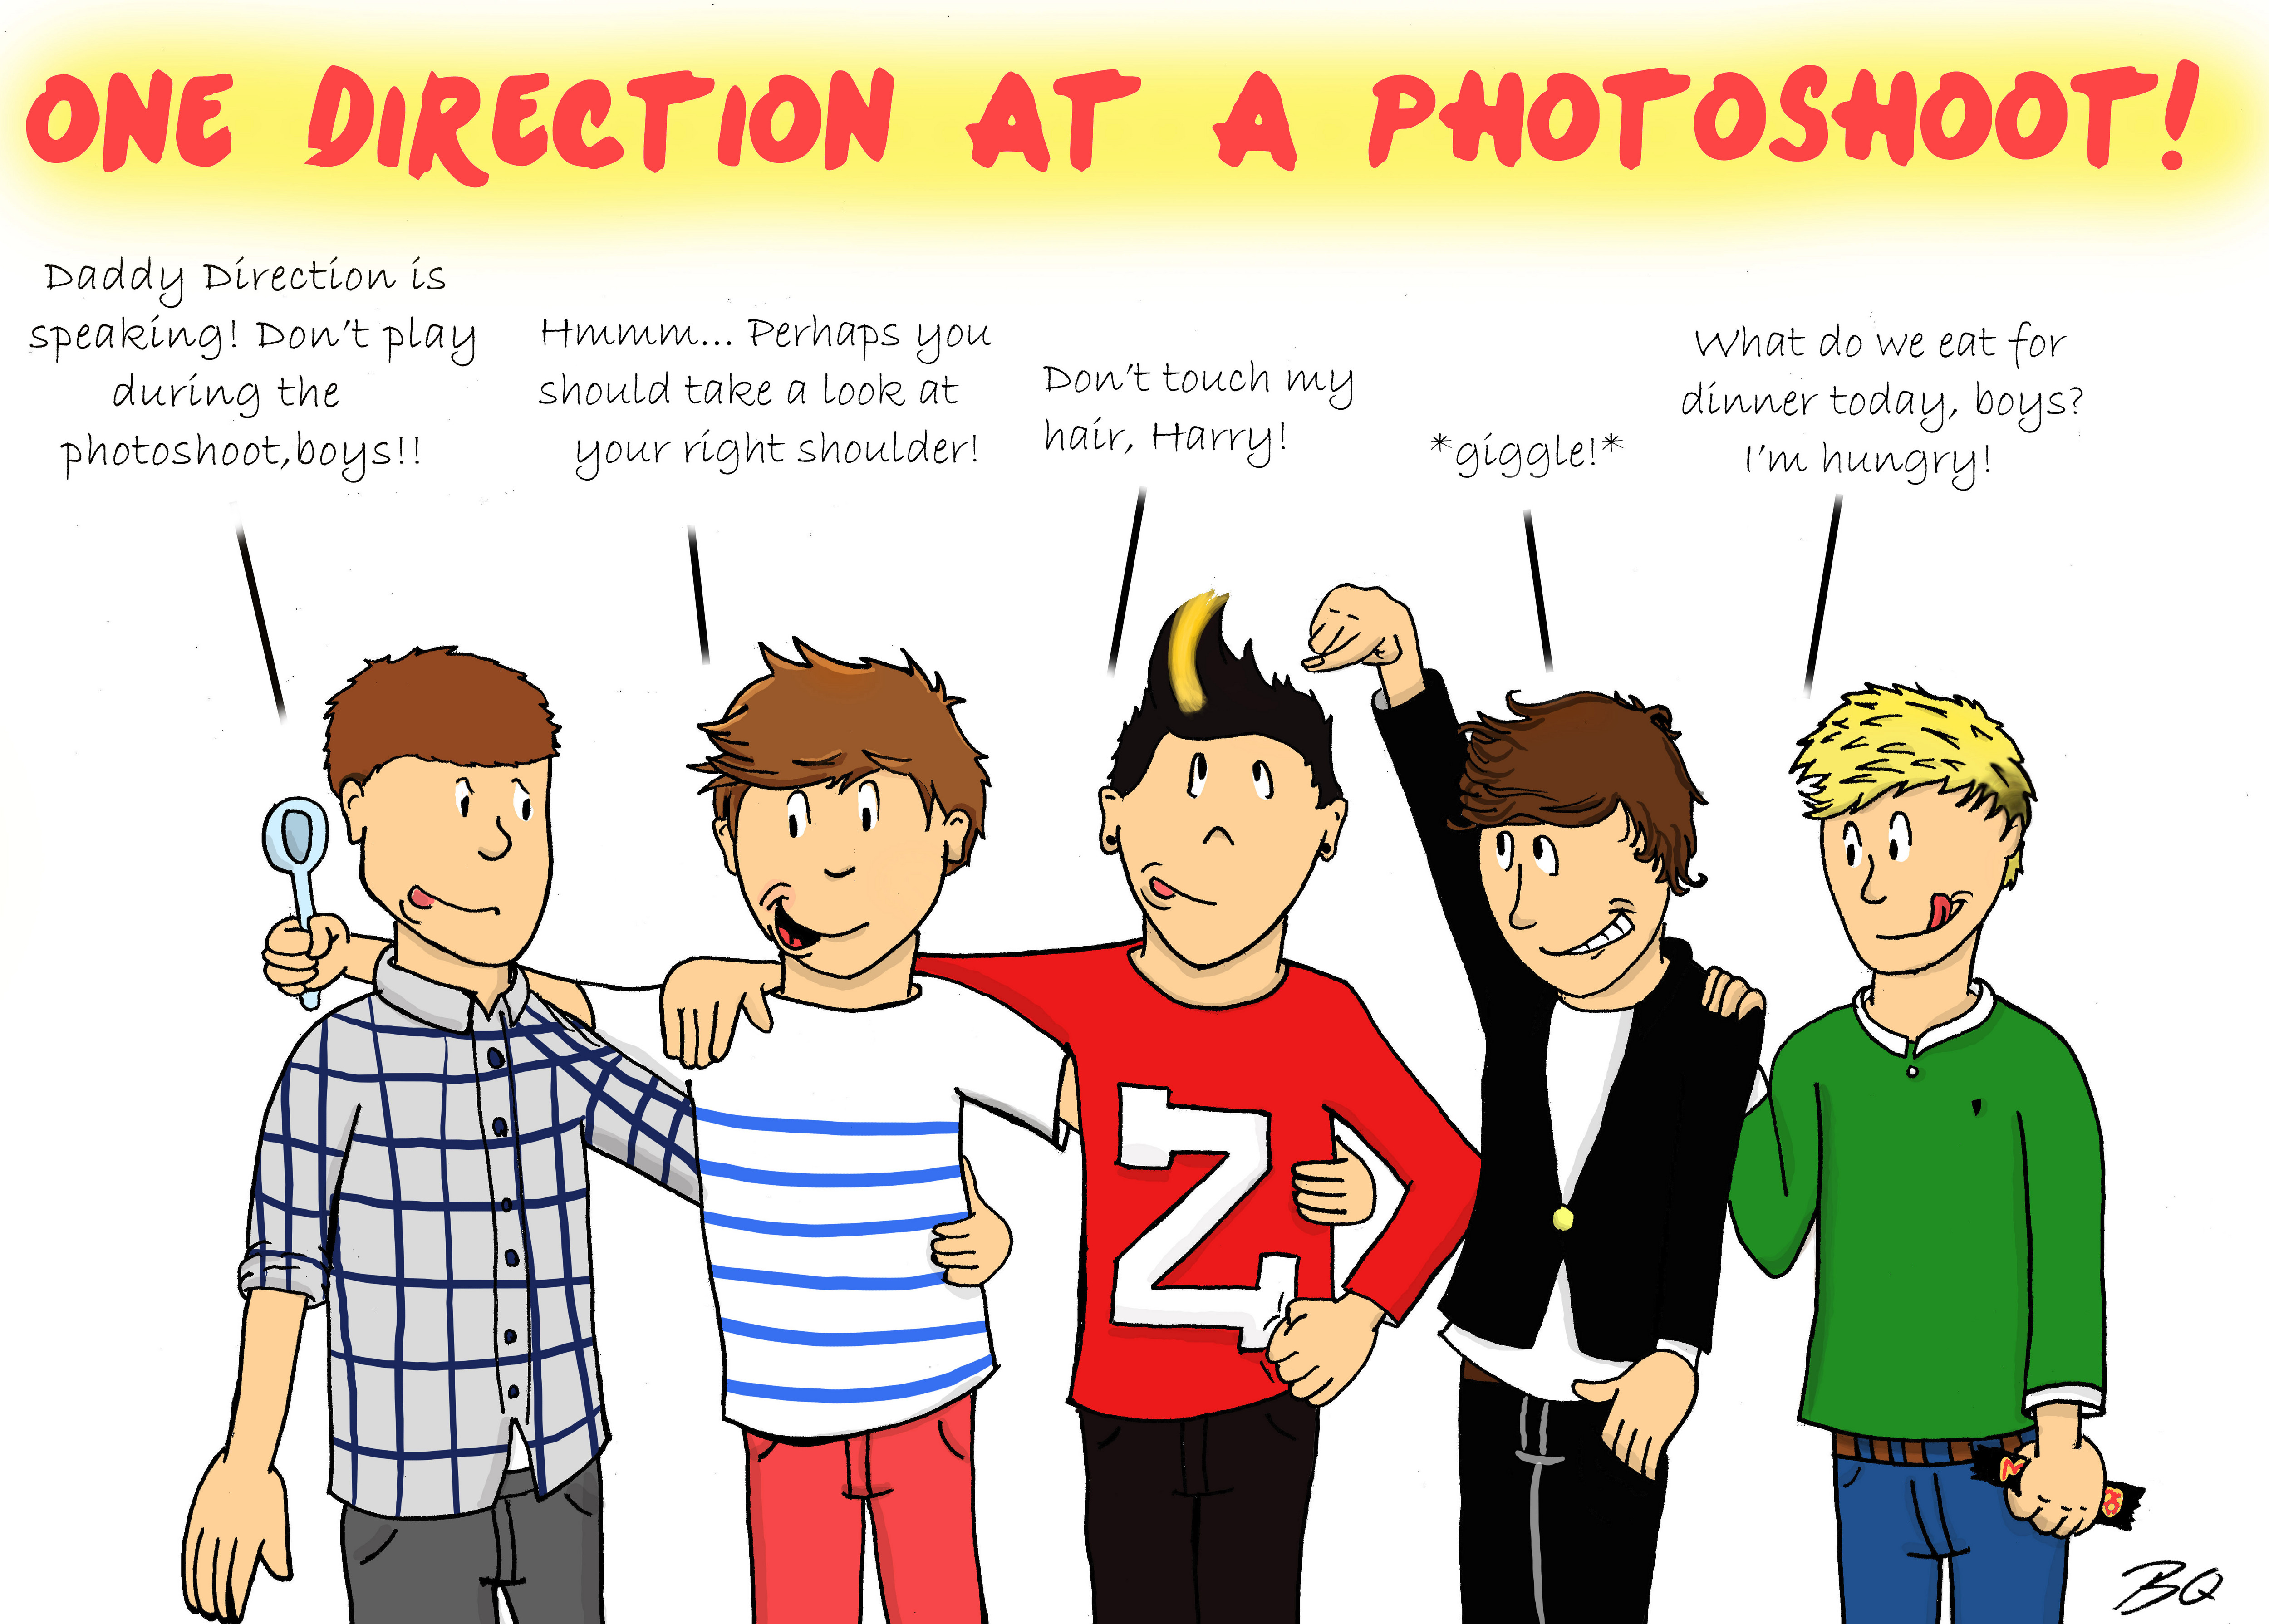 e Direction Collage Drawing Tumblr Pics For e Direction